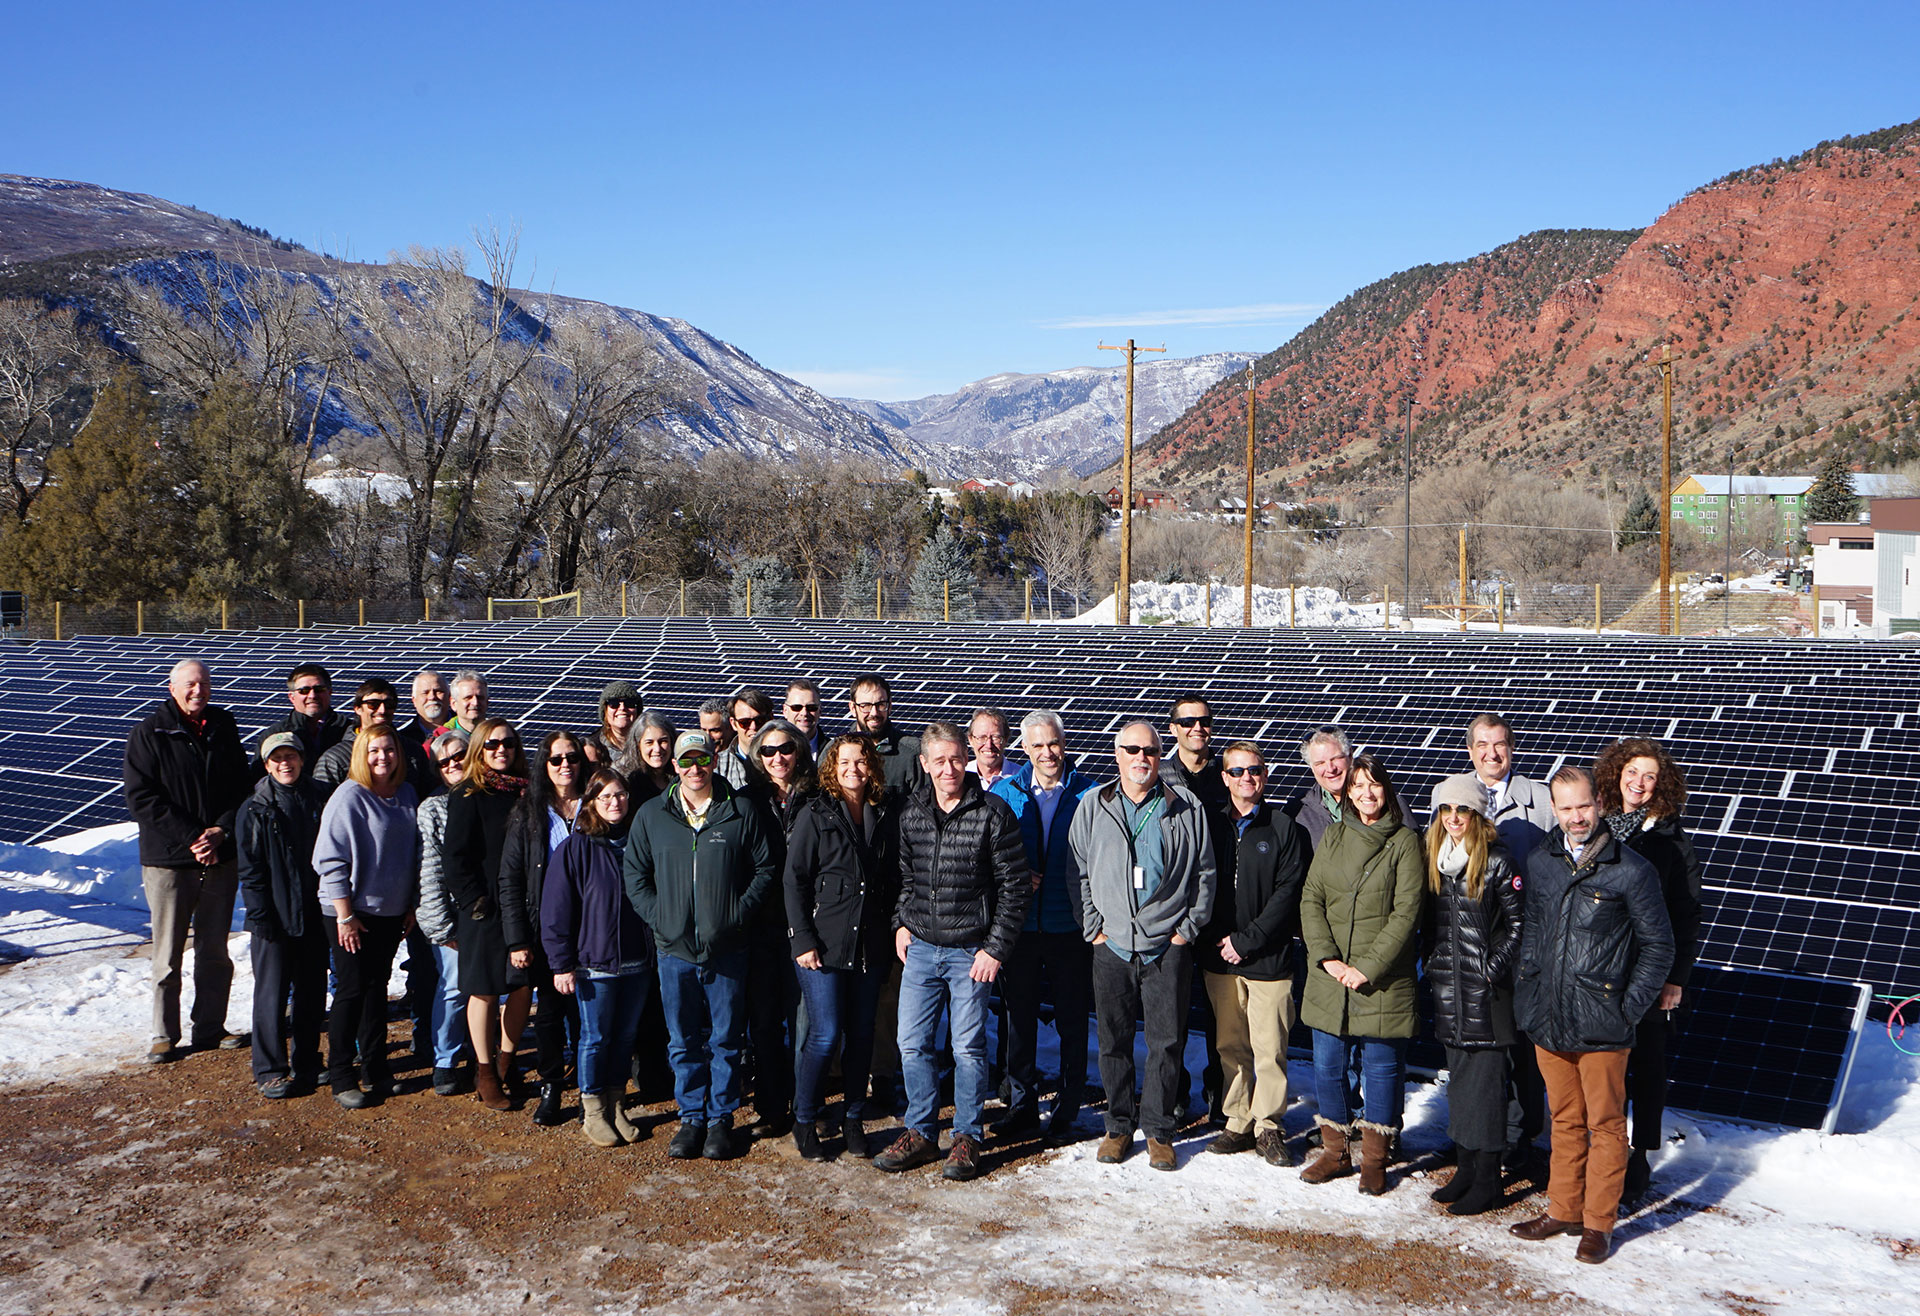 HCE staff in front of campus solar array glenwood springs colorado